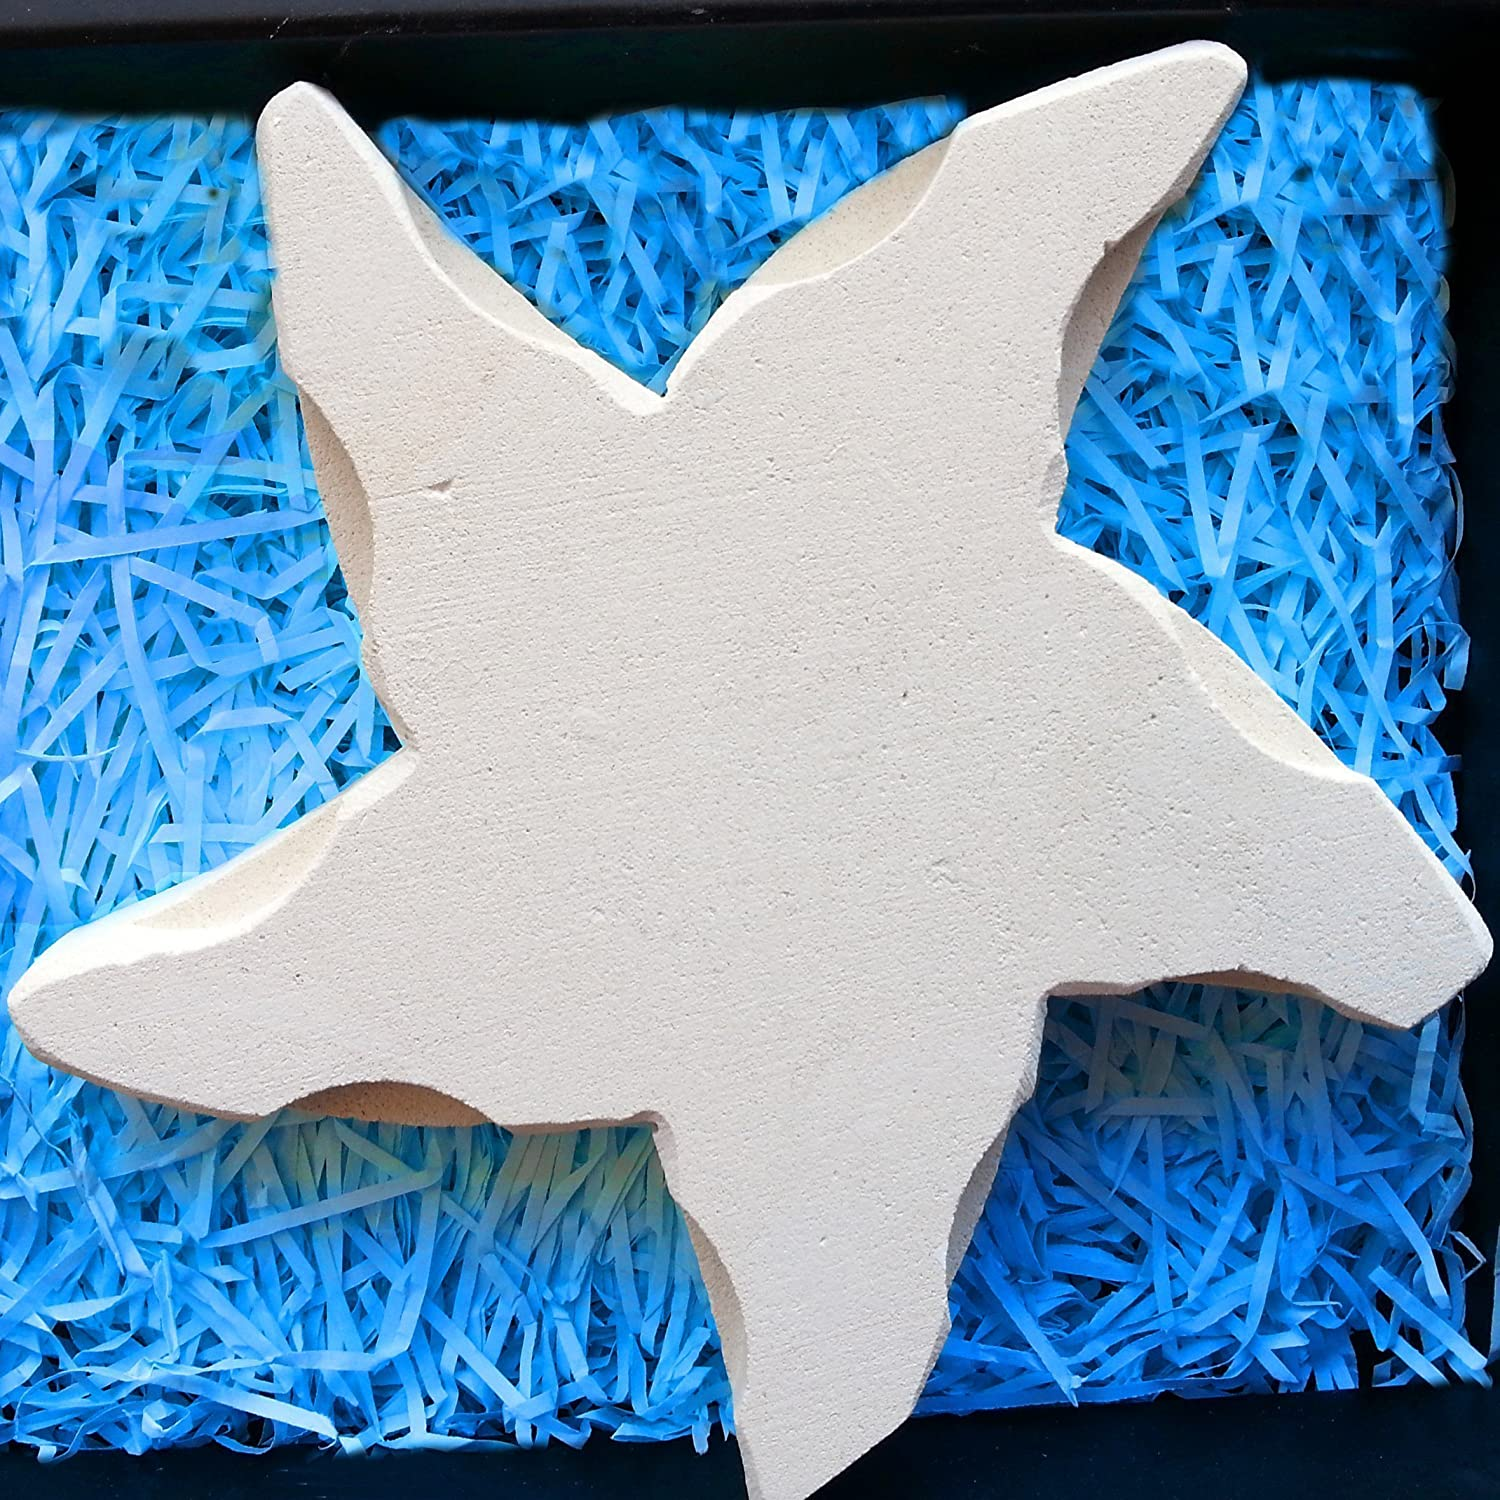 Symbol of Inspiration /& Strength Handmade in Italy Starfish With Gift Box /& Blank Message Card Gift for Him or Her Contains Fossil Fragments